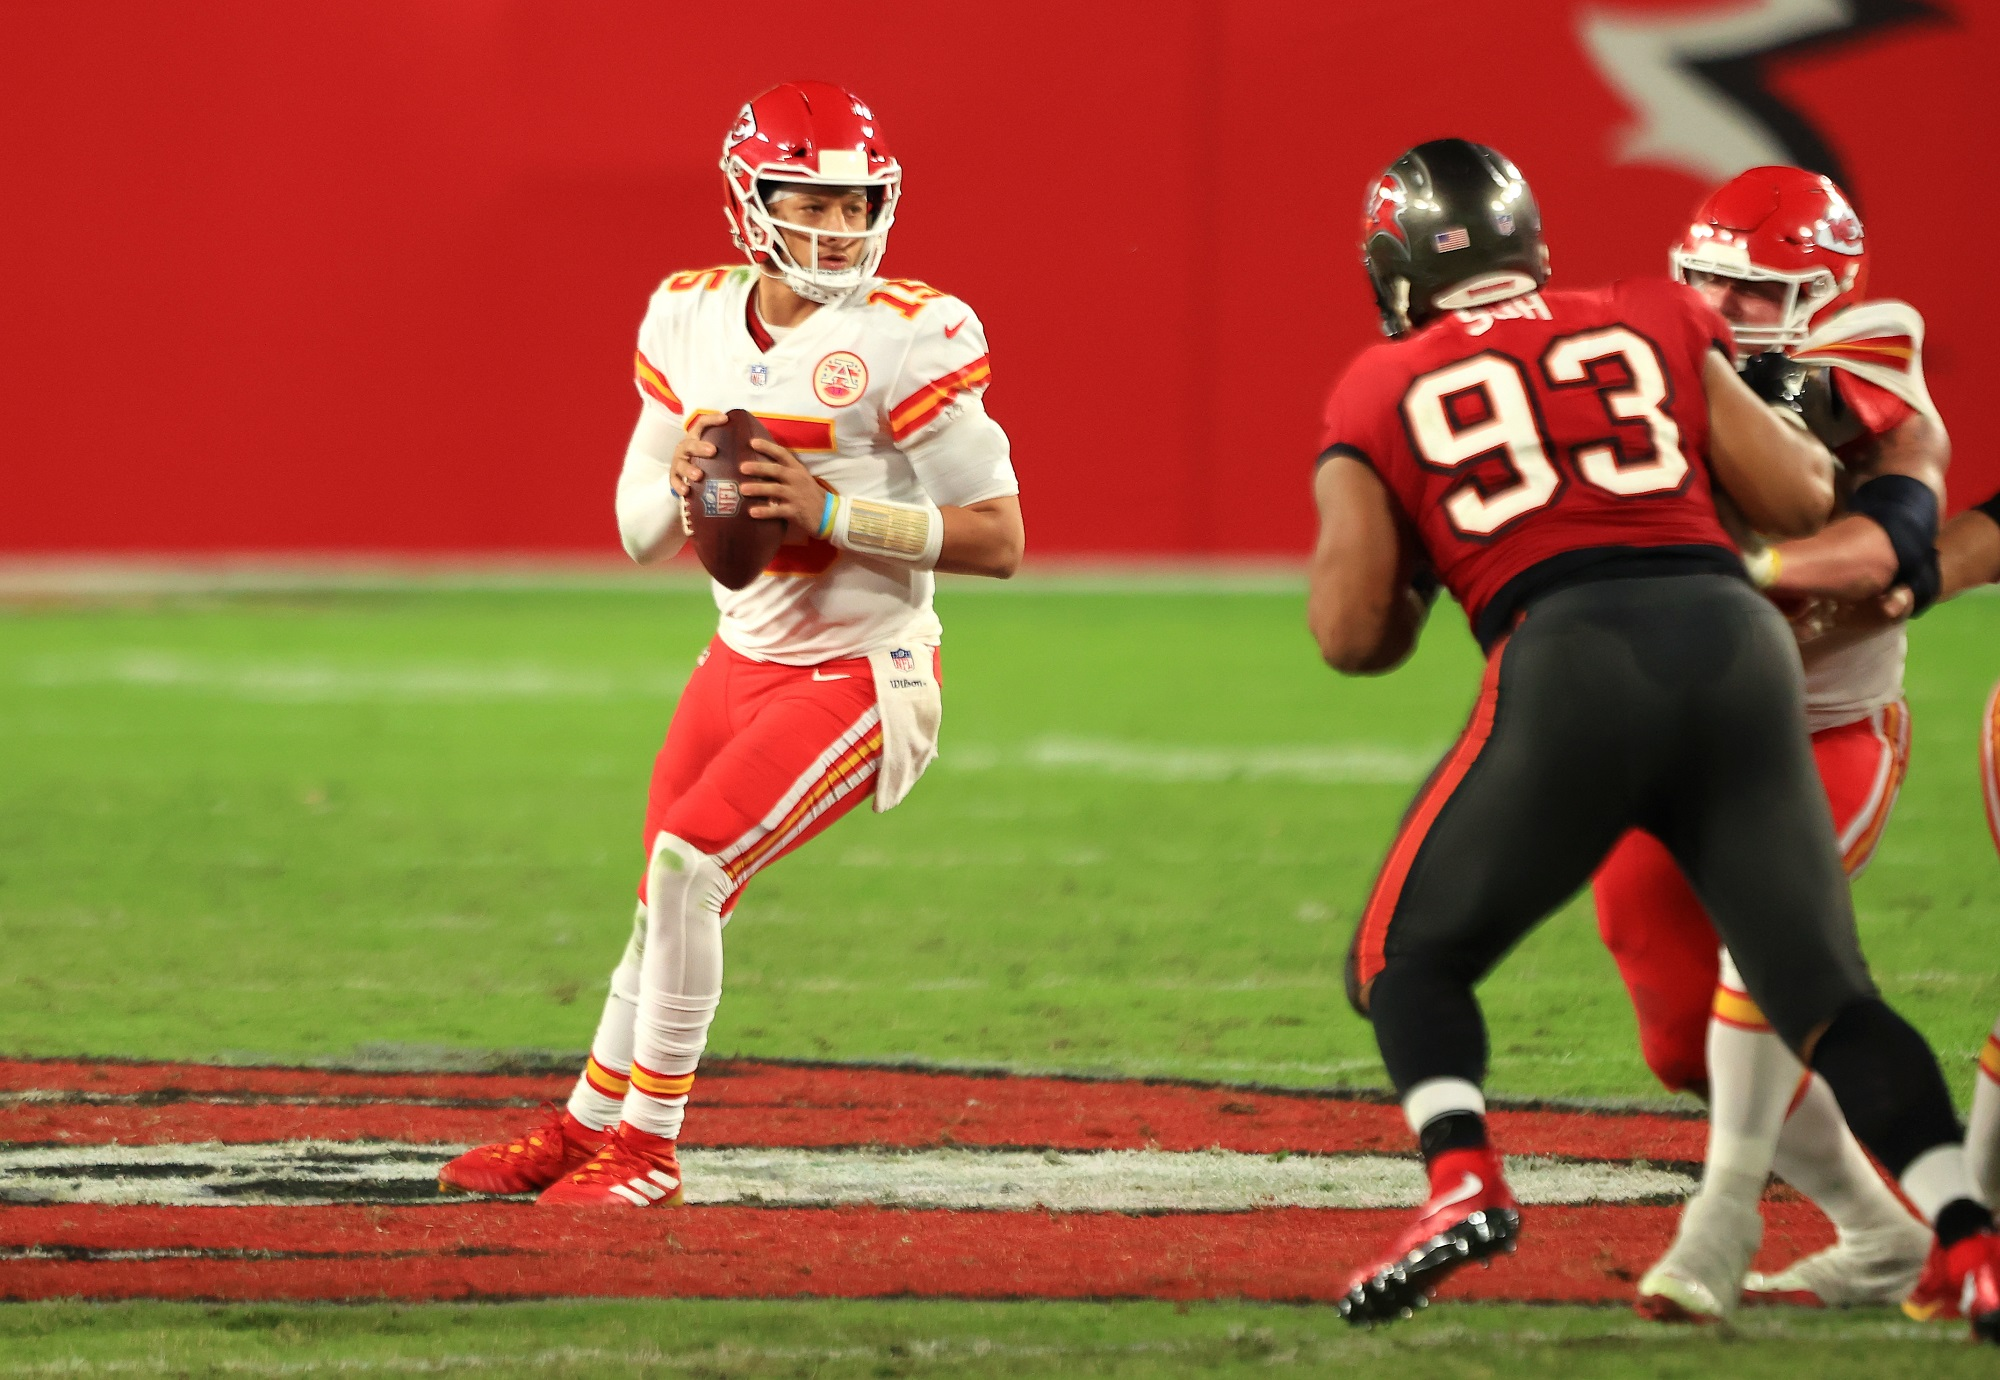 NFL: Kansas City Chiefs v Tampa Bay Buccaneers